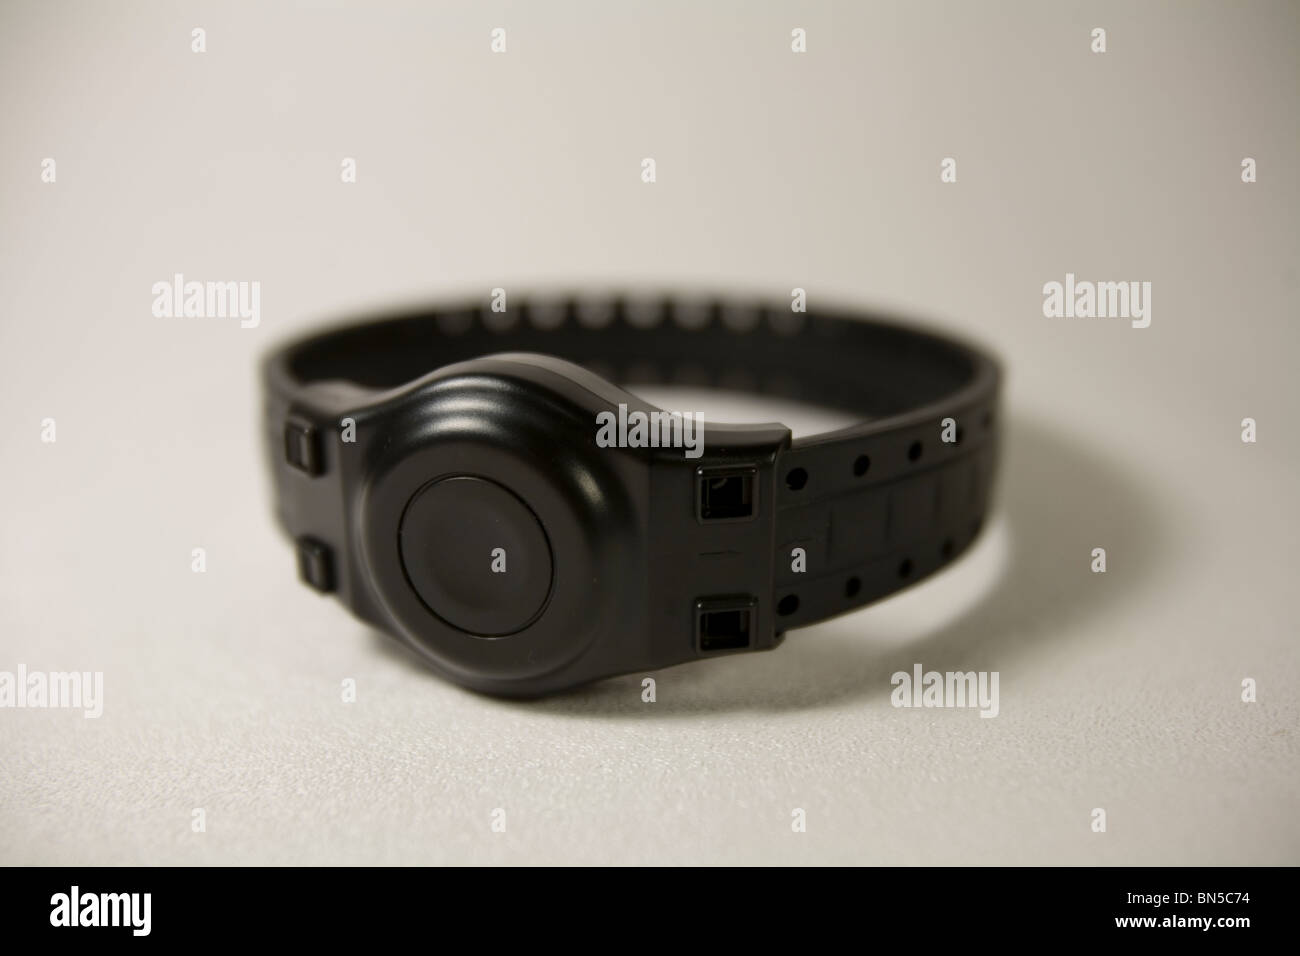 in politics prison bracelets detention electronic replace monitoring xl bracelet to